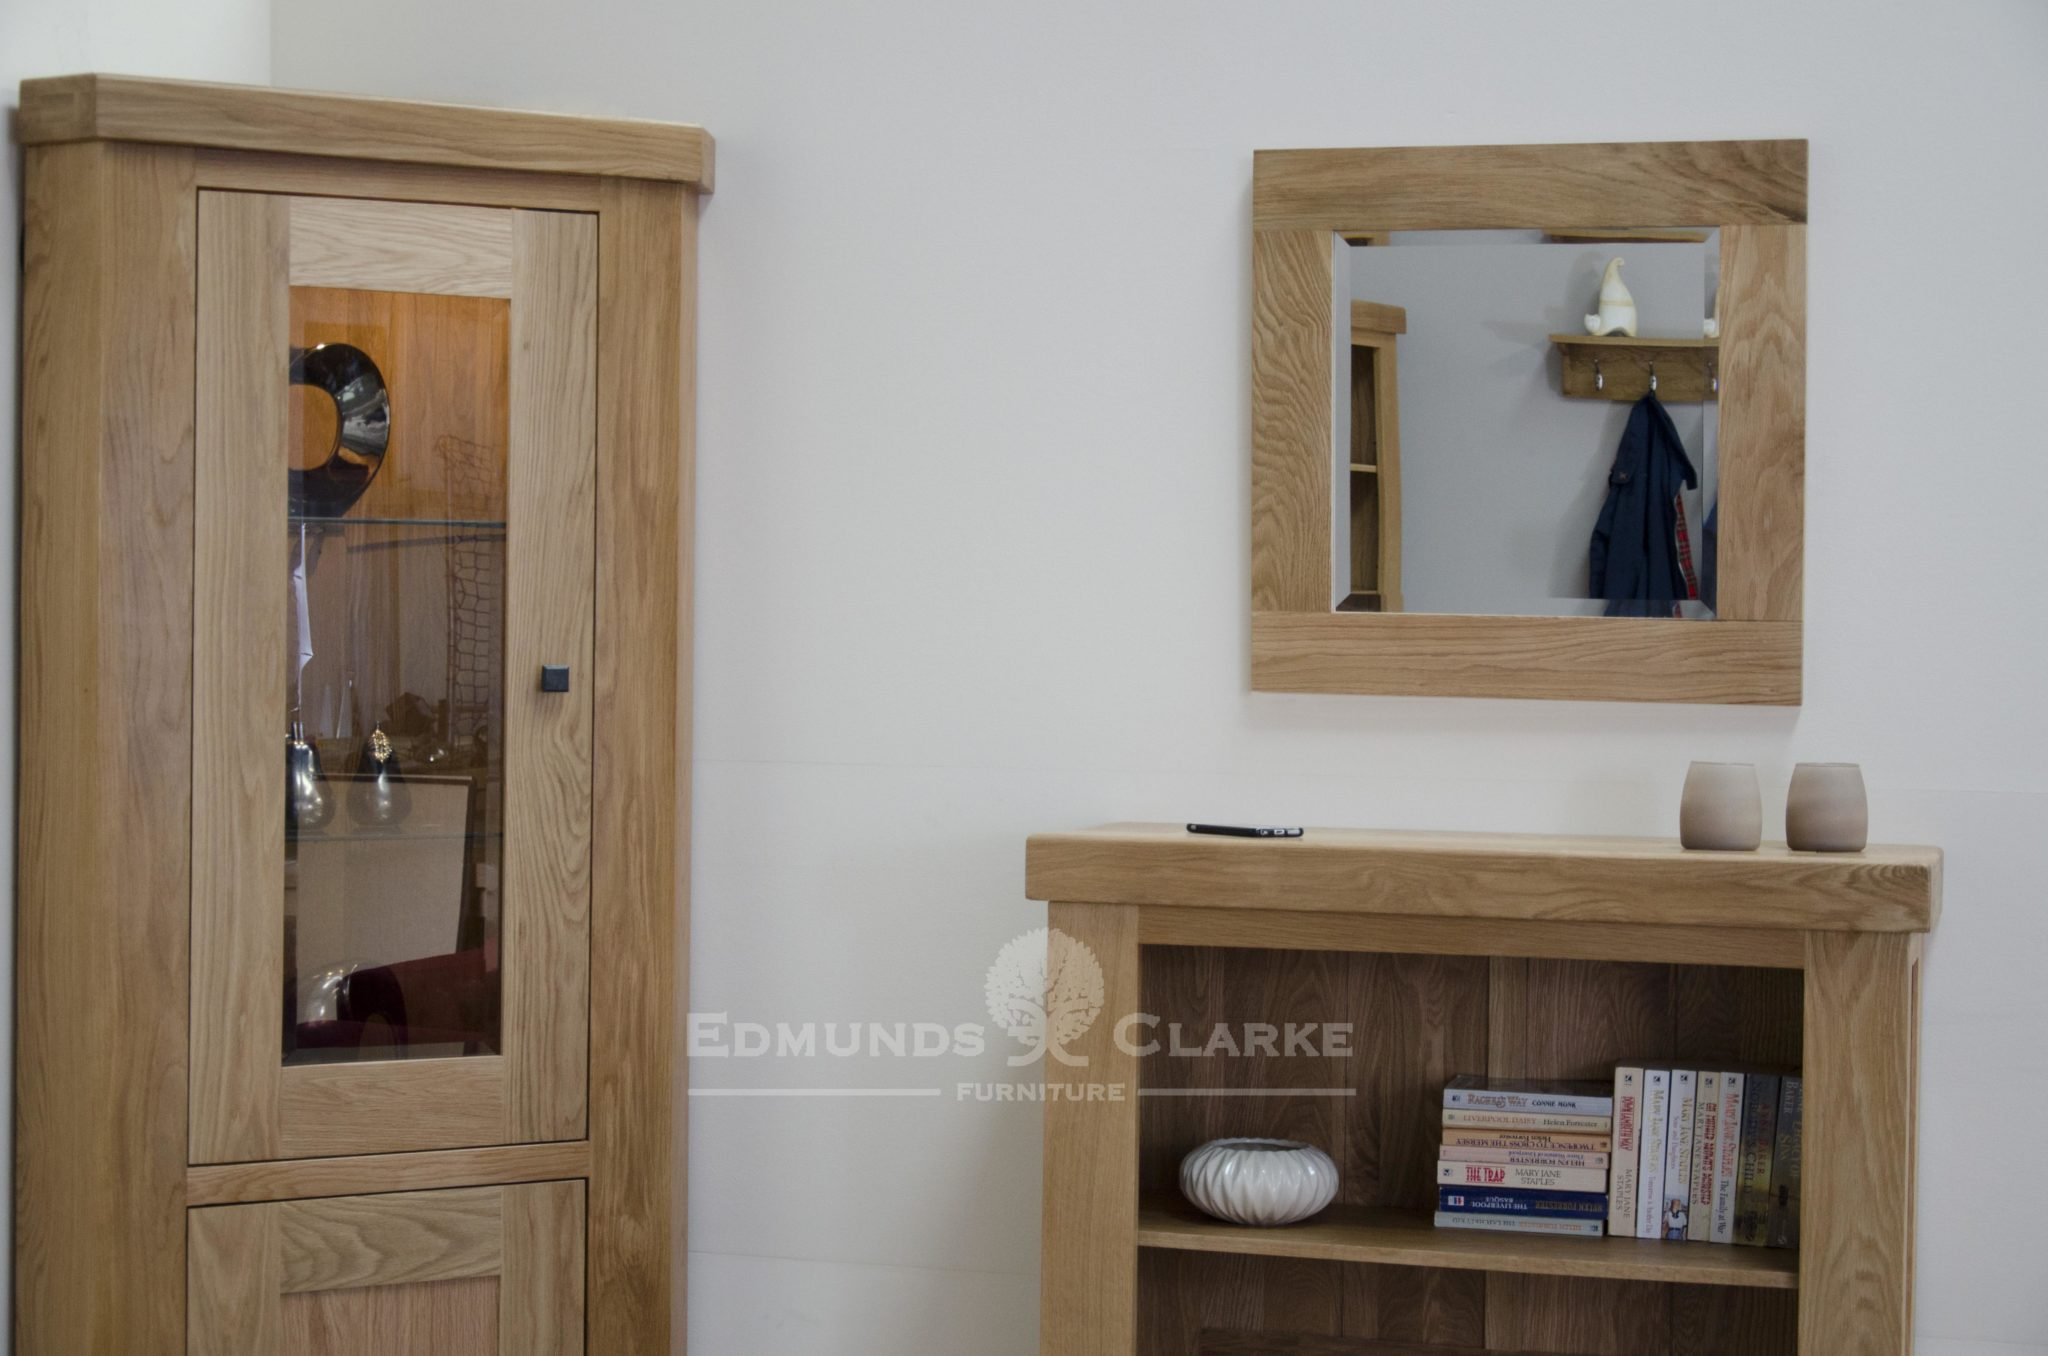 solid oak square wall mirror 60cm  x 60cm. Bevelled glass in a light oak frame